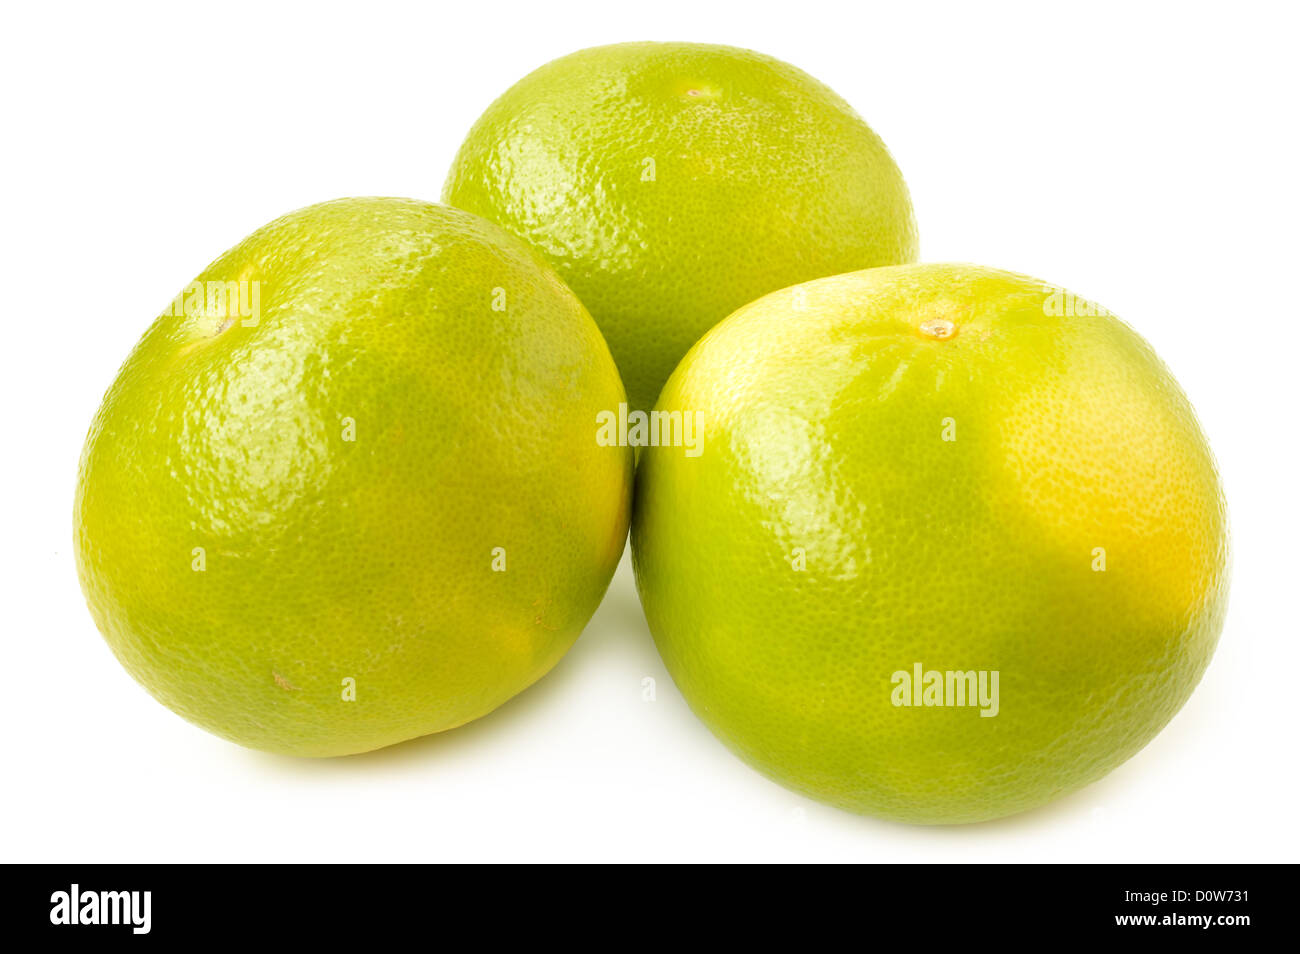 Citrus sveetie on a white background close-up - Stock Image